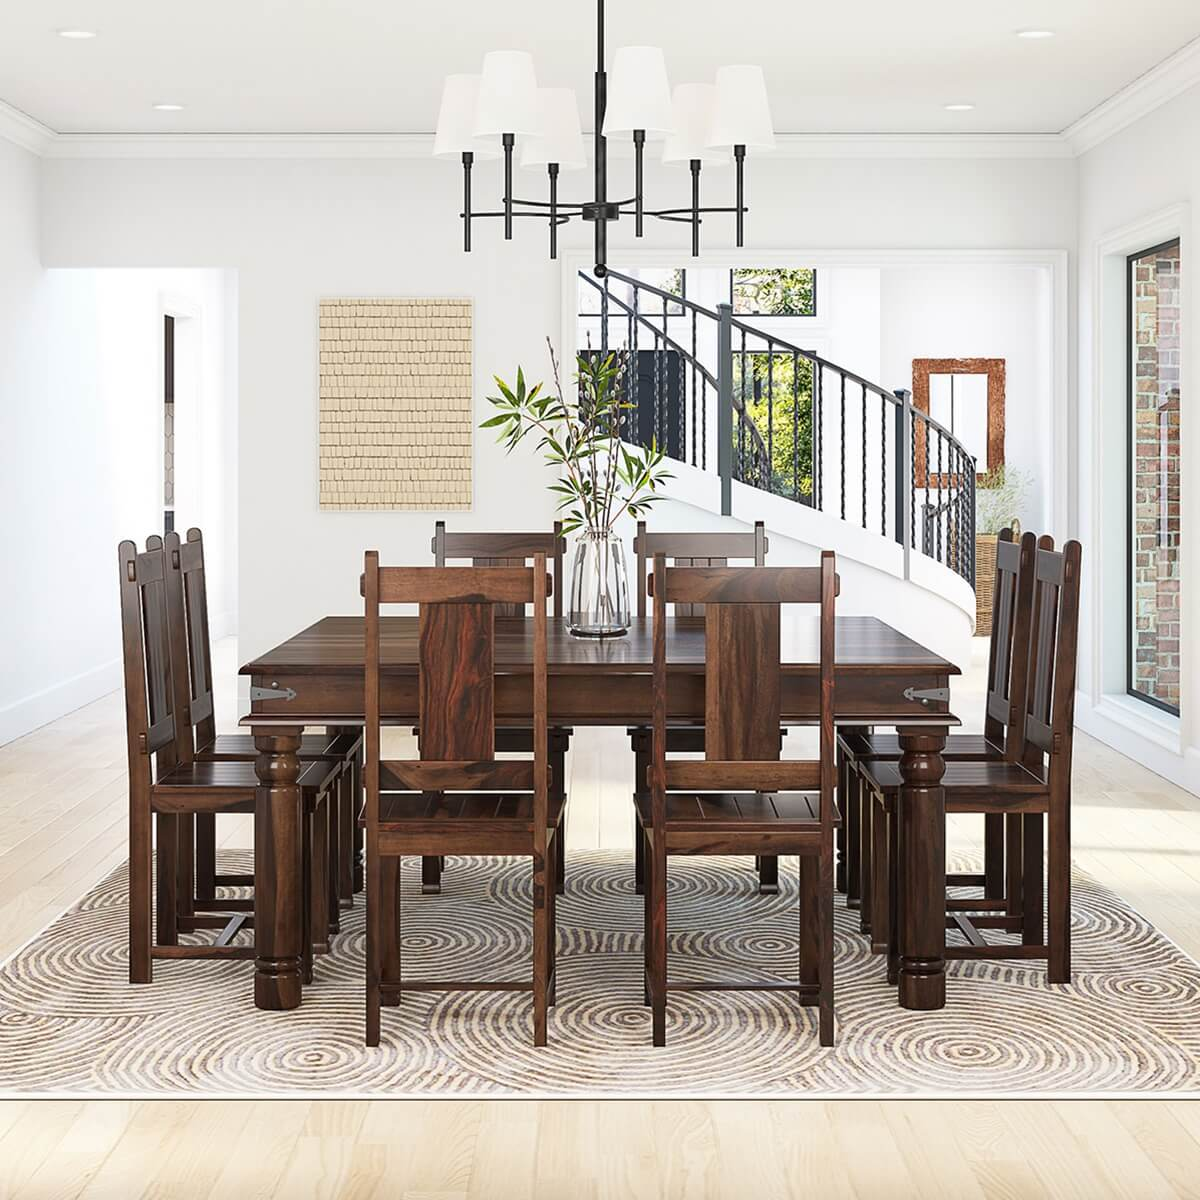 Dining Table Chairs Set Cheap rustic dining table and chair sets | sierra living concepts